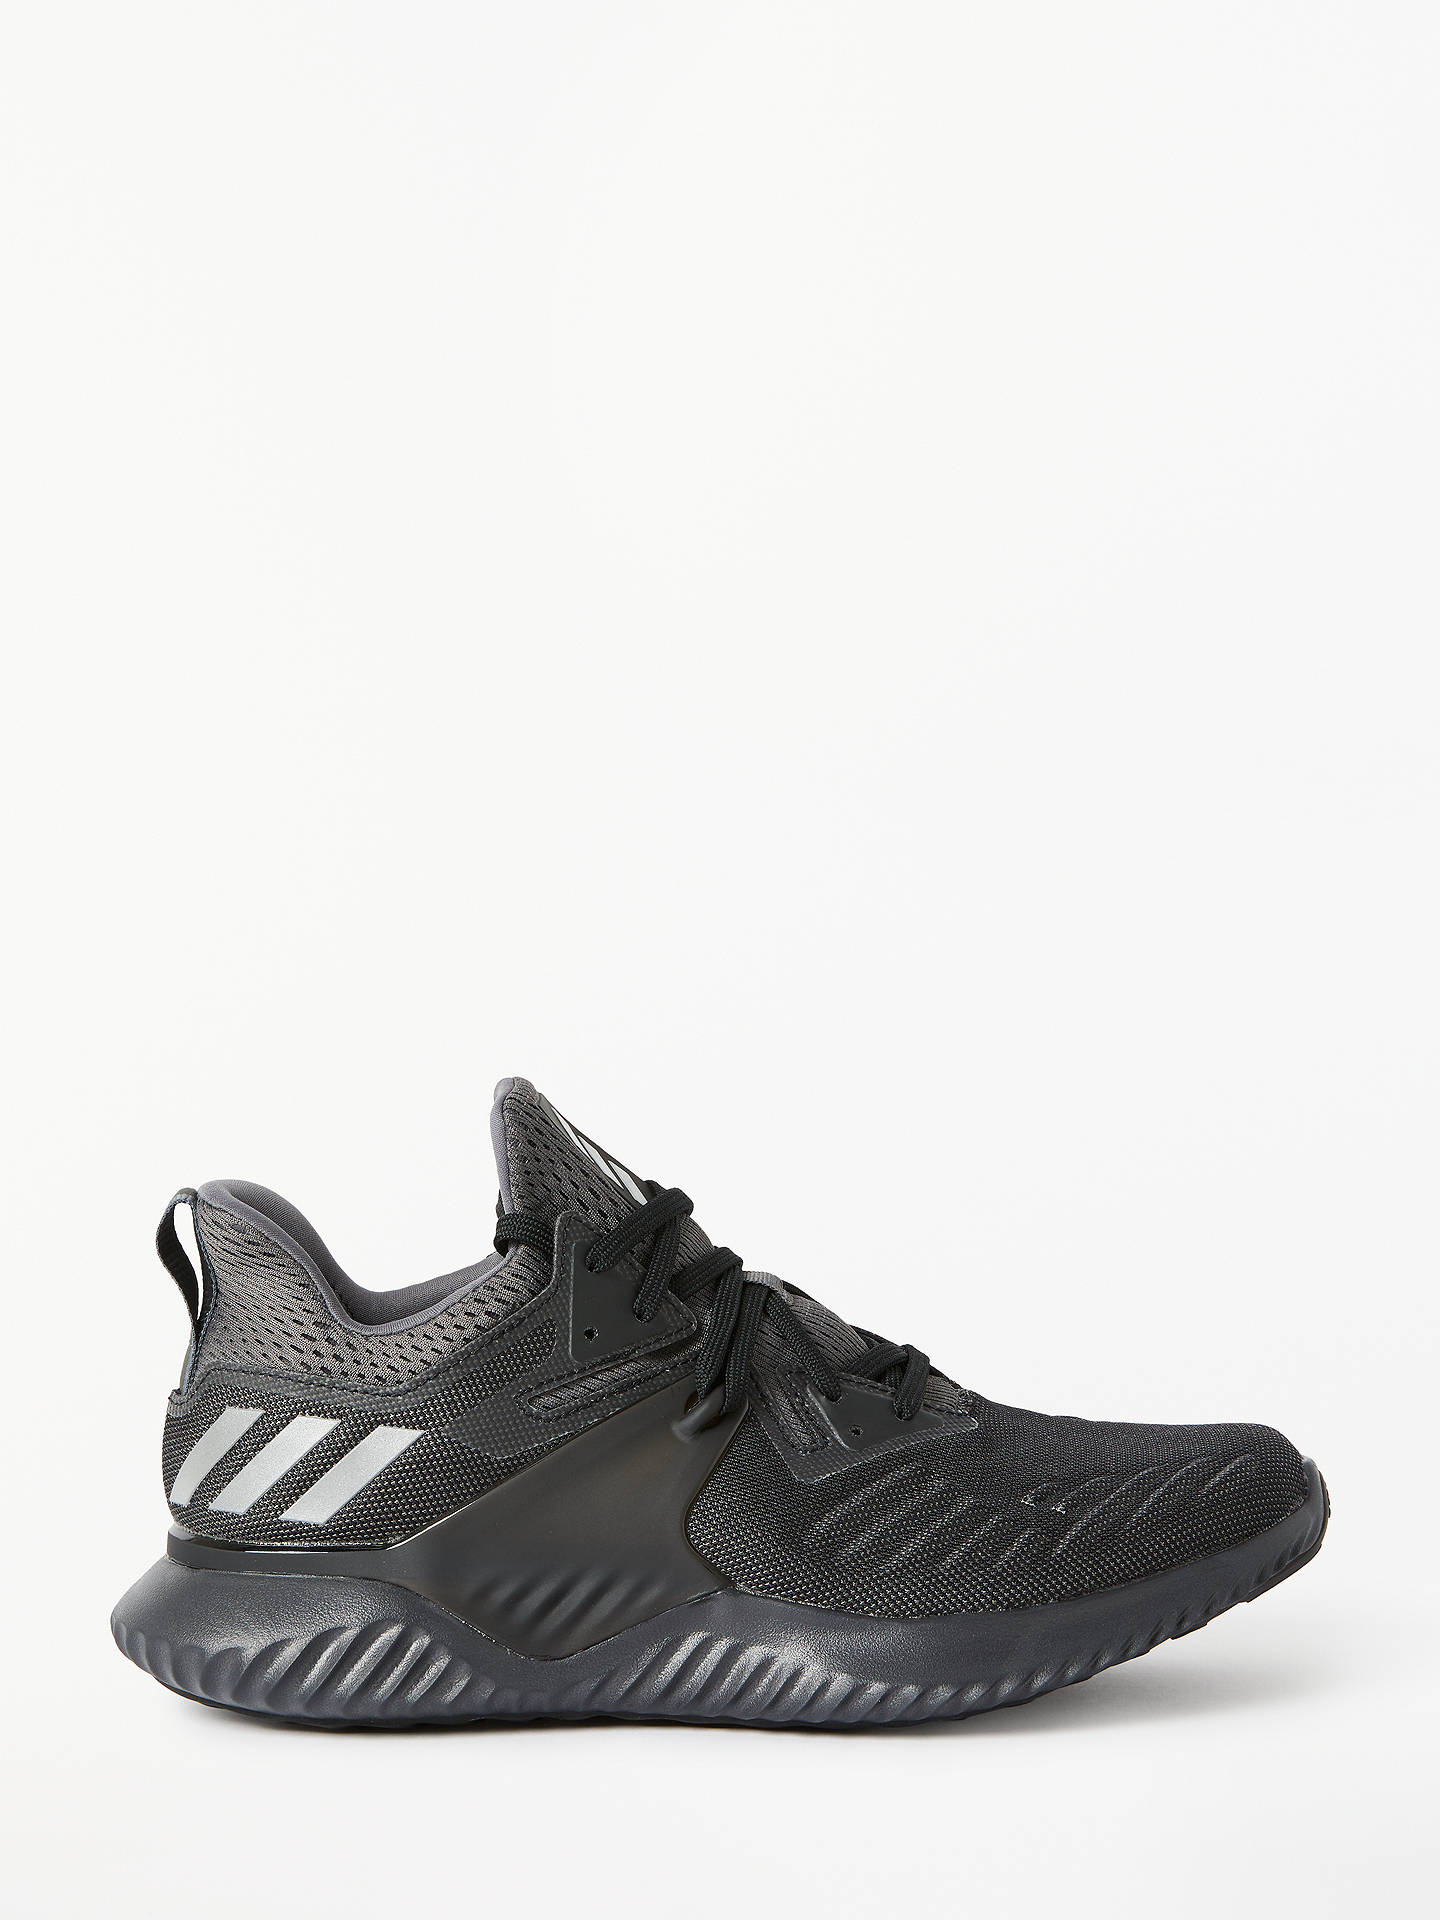 b3a299d30f610 adidas Alphabounce Beyond 2.0 Men s Running Shoes at John Lewis ...